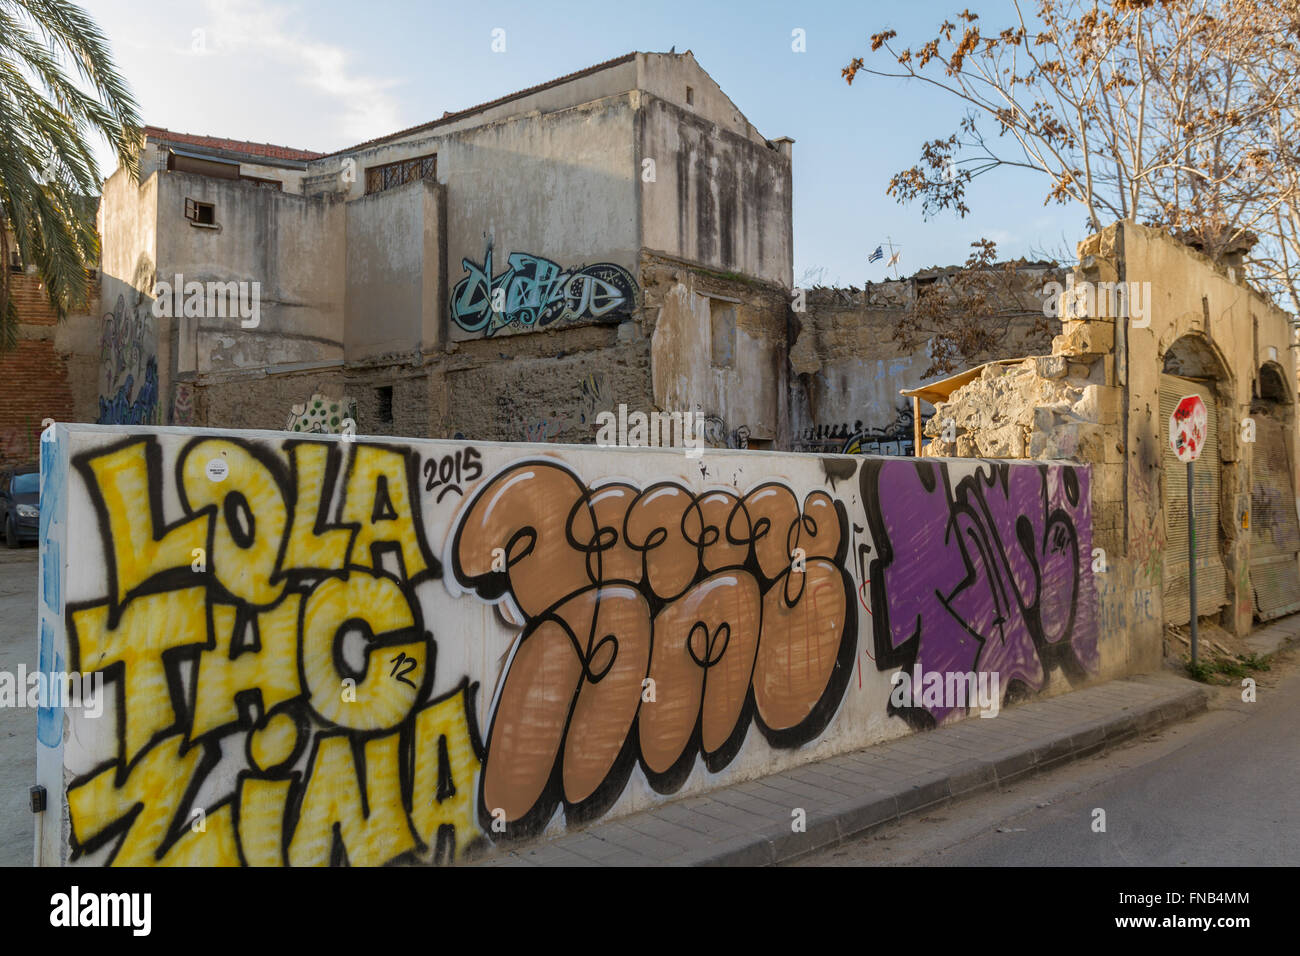 Nicosia, Cyprus - 26 February, 2016:  Street Art and Derelict Buildings in the Old Nicosia city center. - Stock Image